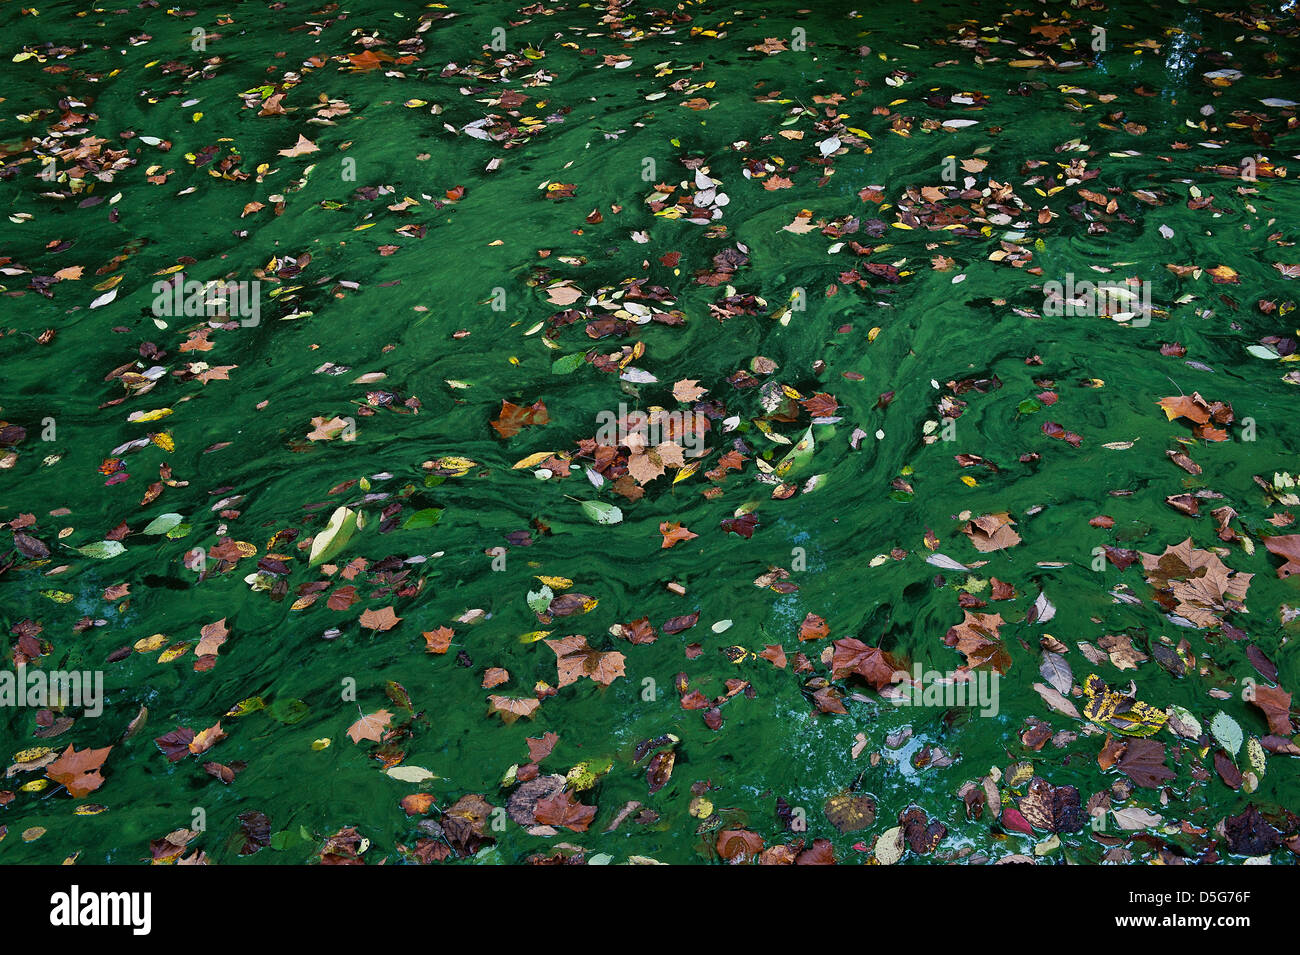 Autumn leaves in a stagnant pool of green algae. Stock Photo